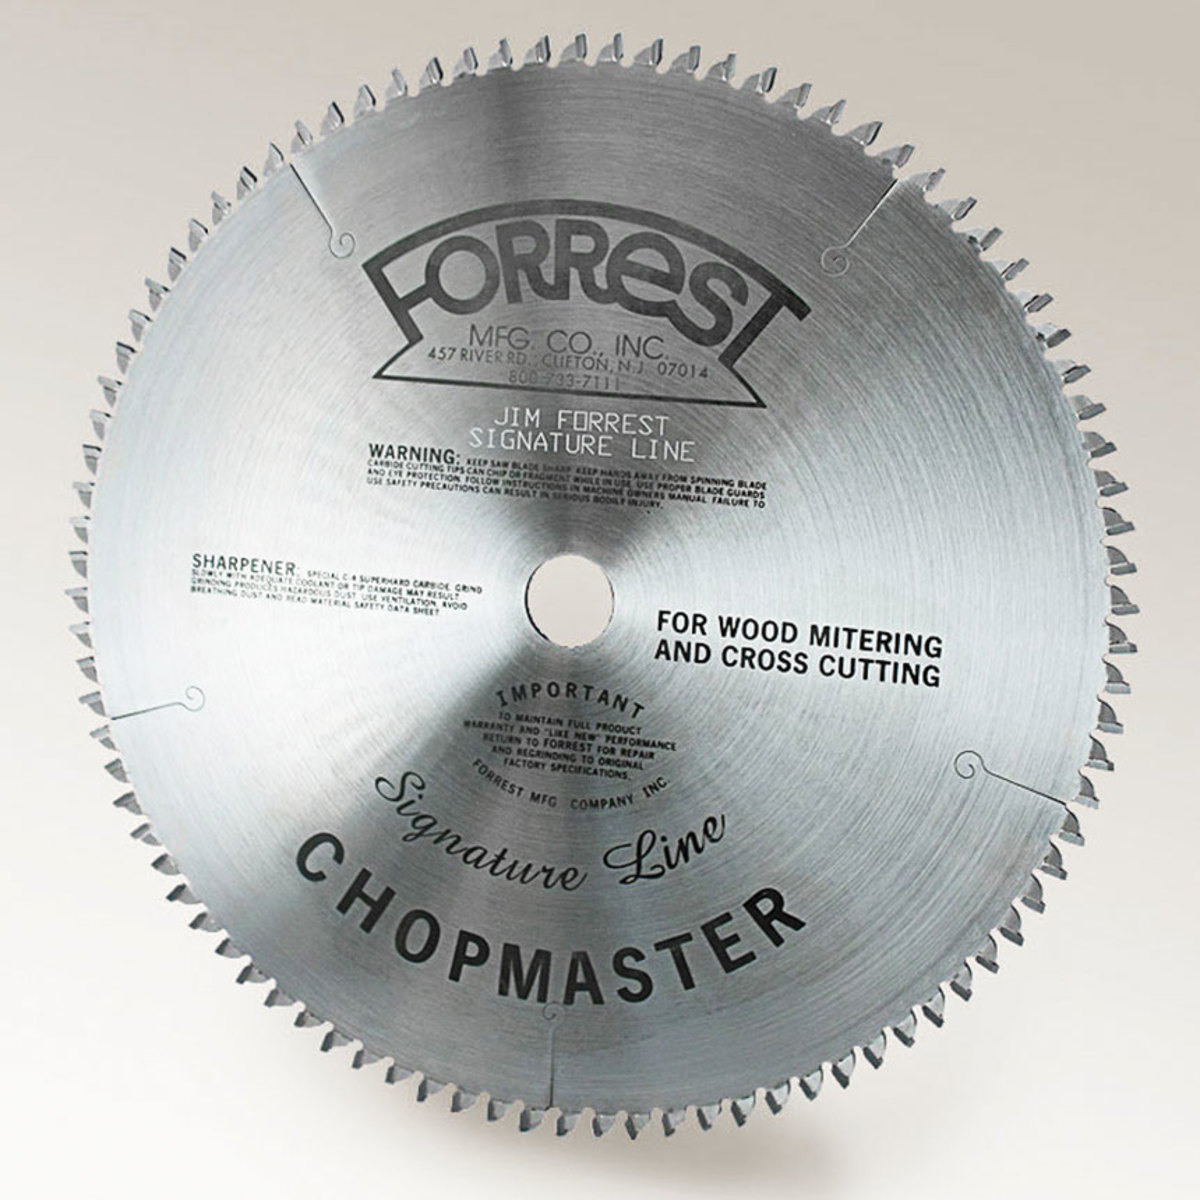 forrest-chopmaster-signature-line